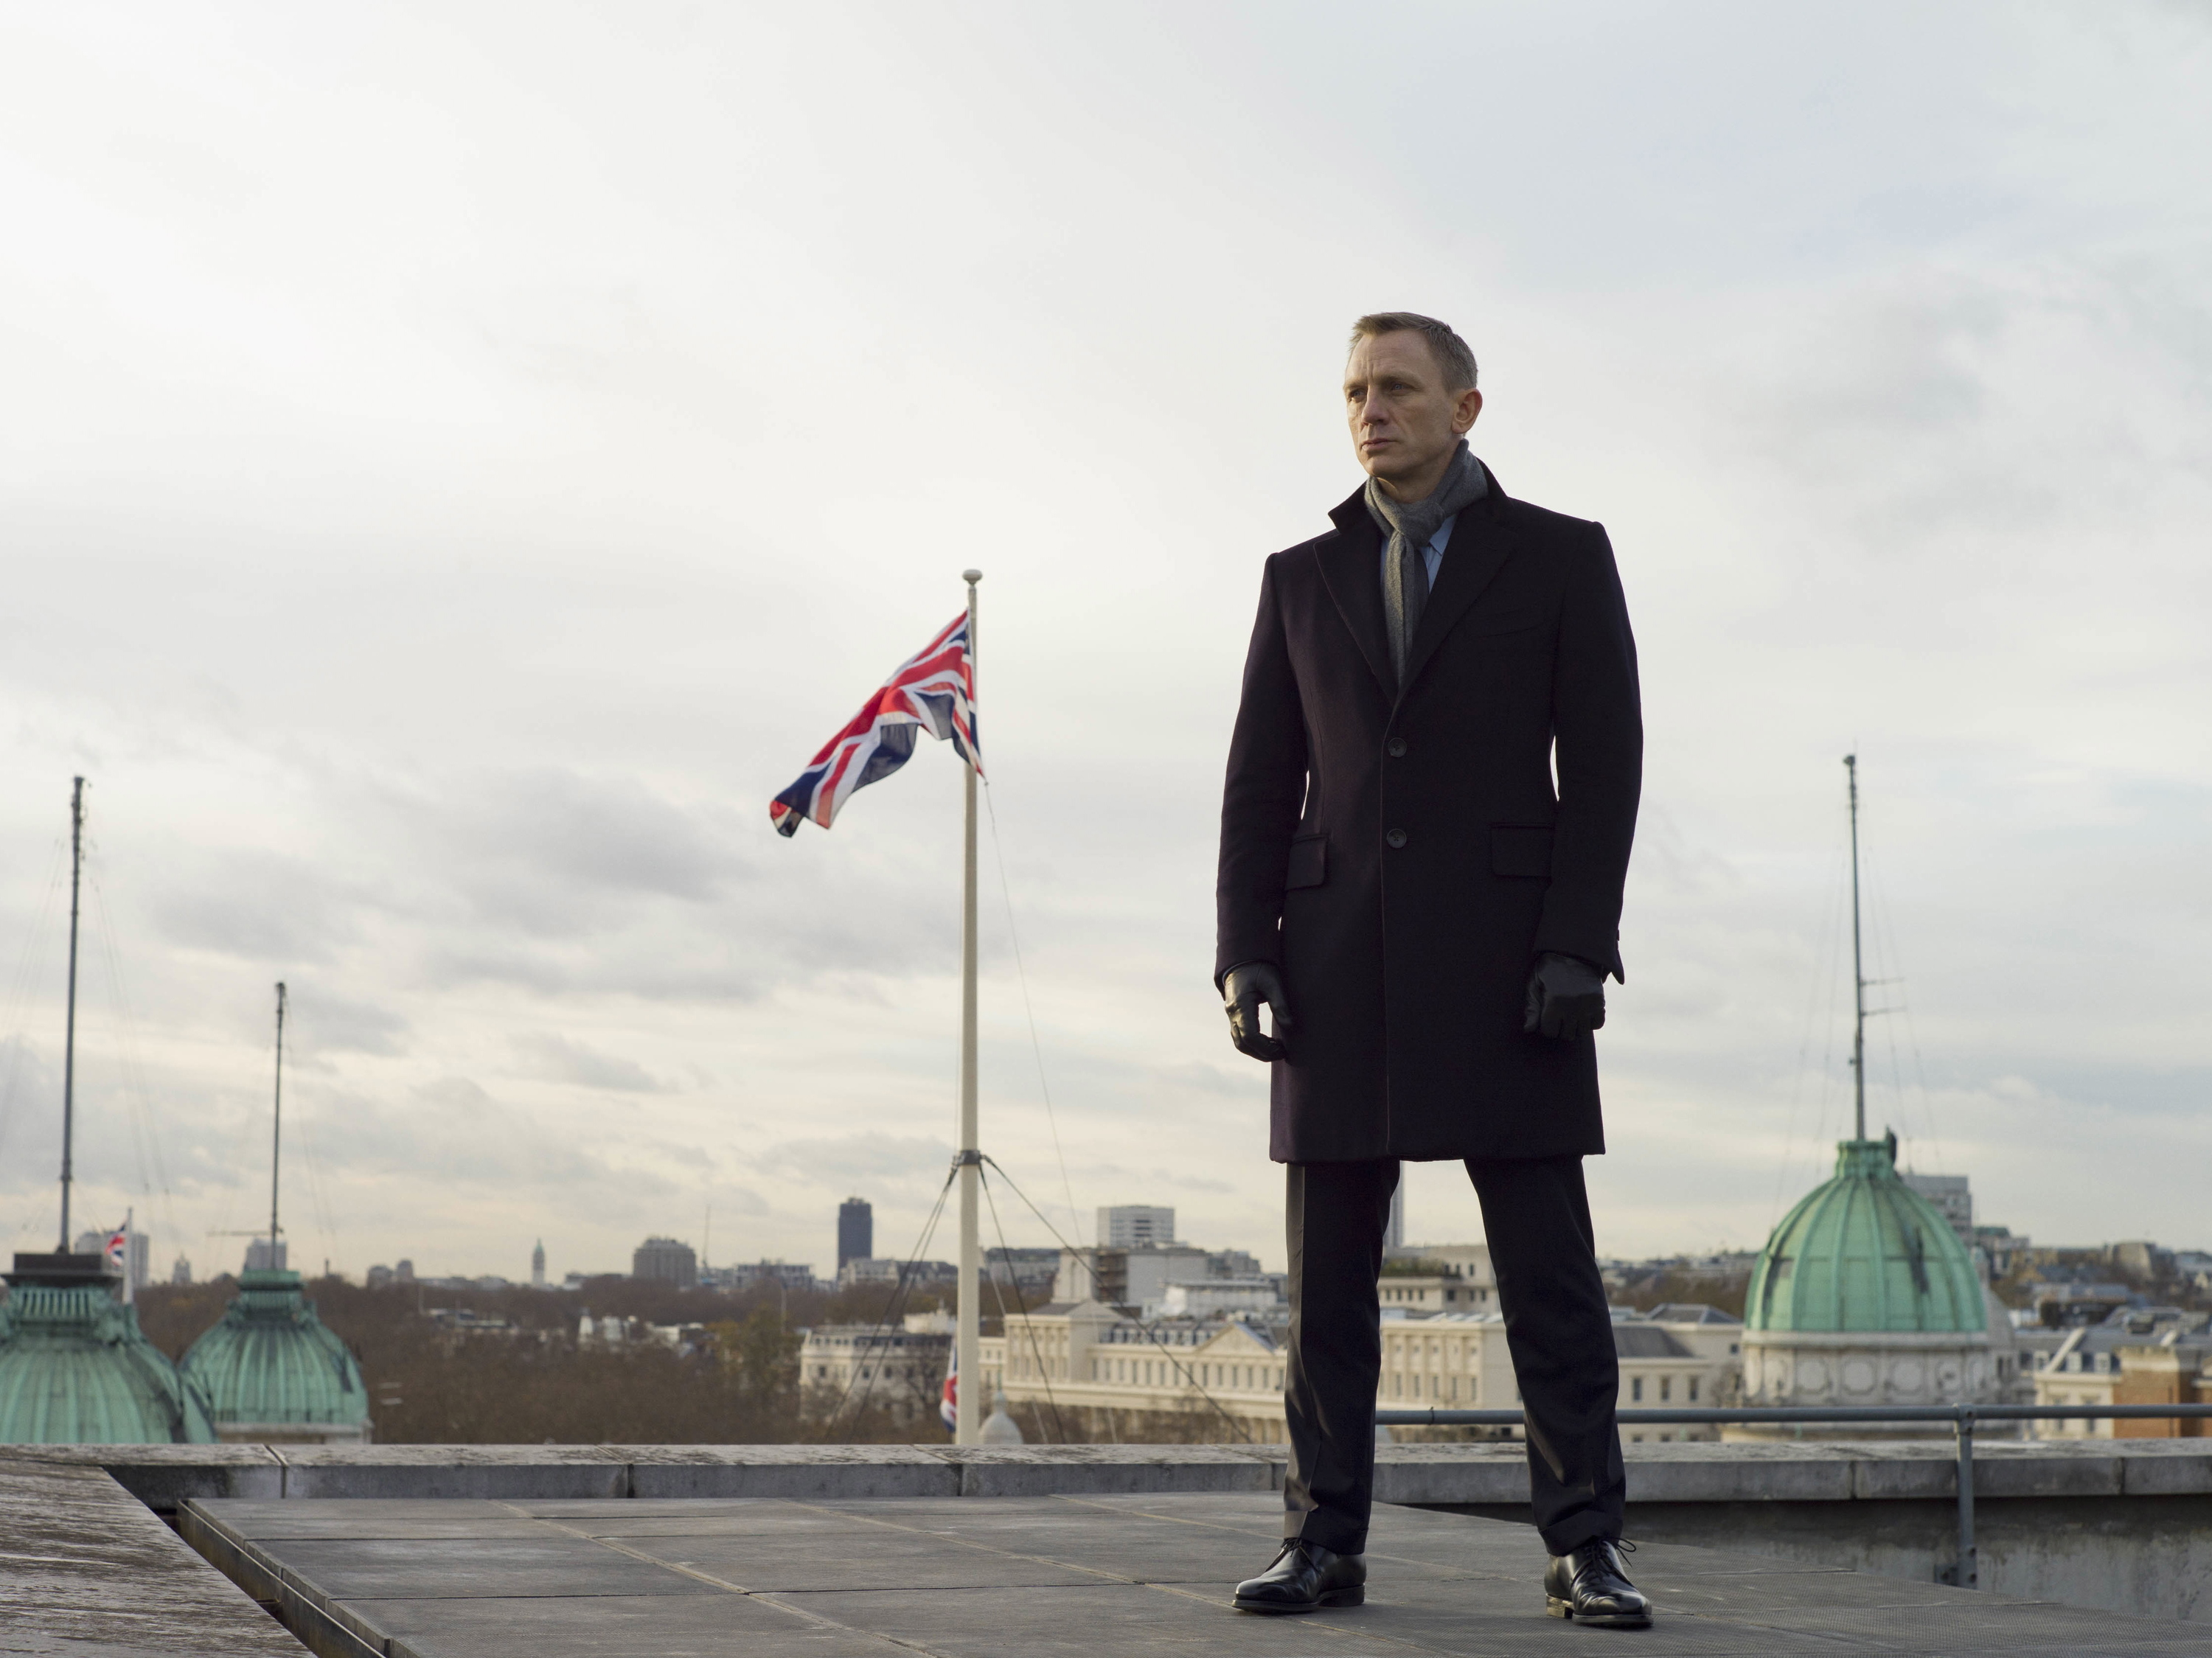 Ten great British action heroes, Daniel Craig stars as James Bond in Metro-Goldwyn-Mayer Pictures/Columbia Pictures/EON Productions... action adventure SKYFALL.